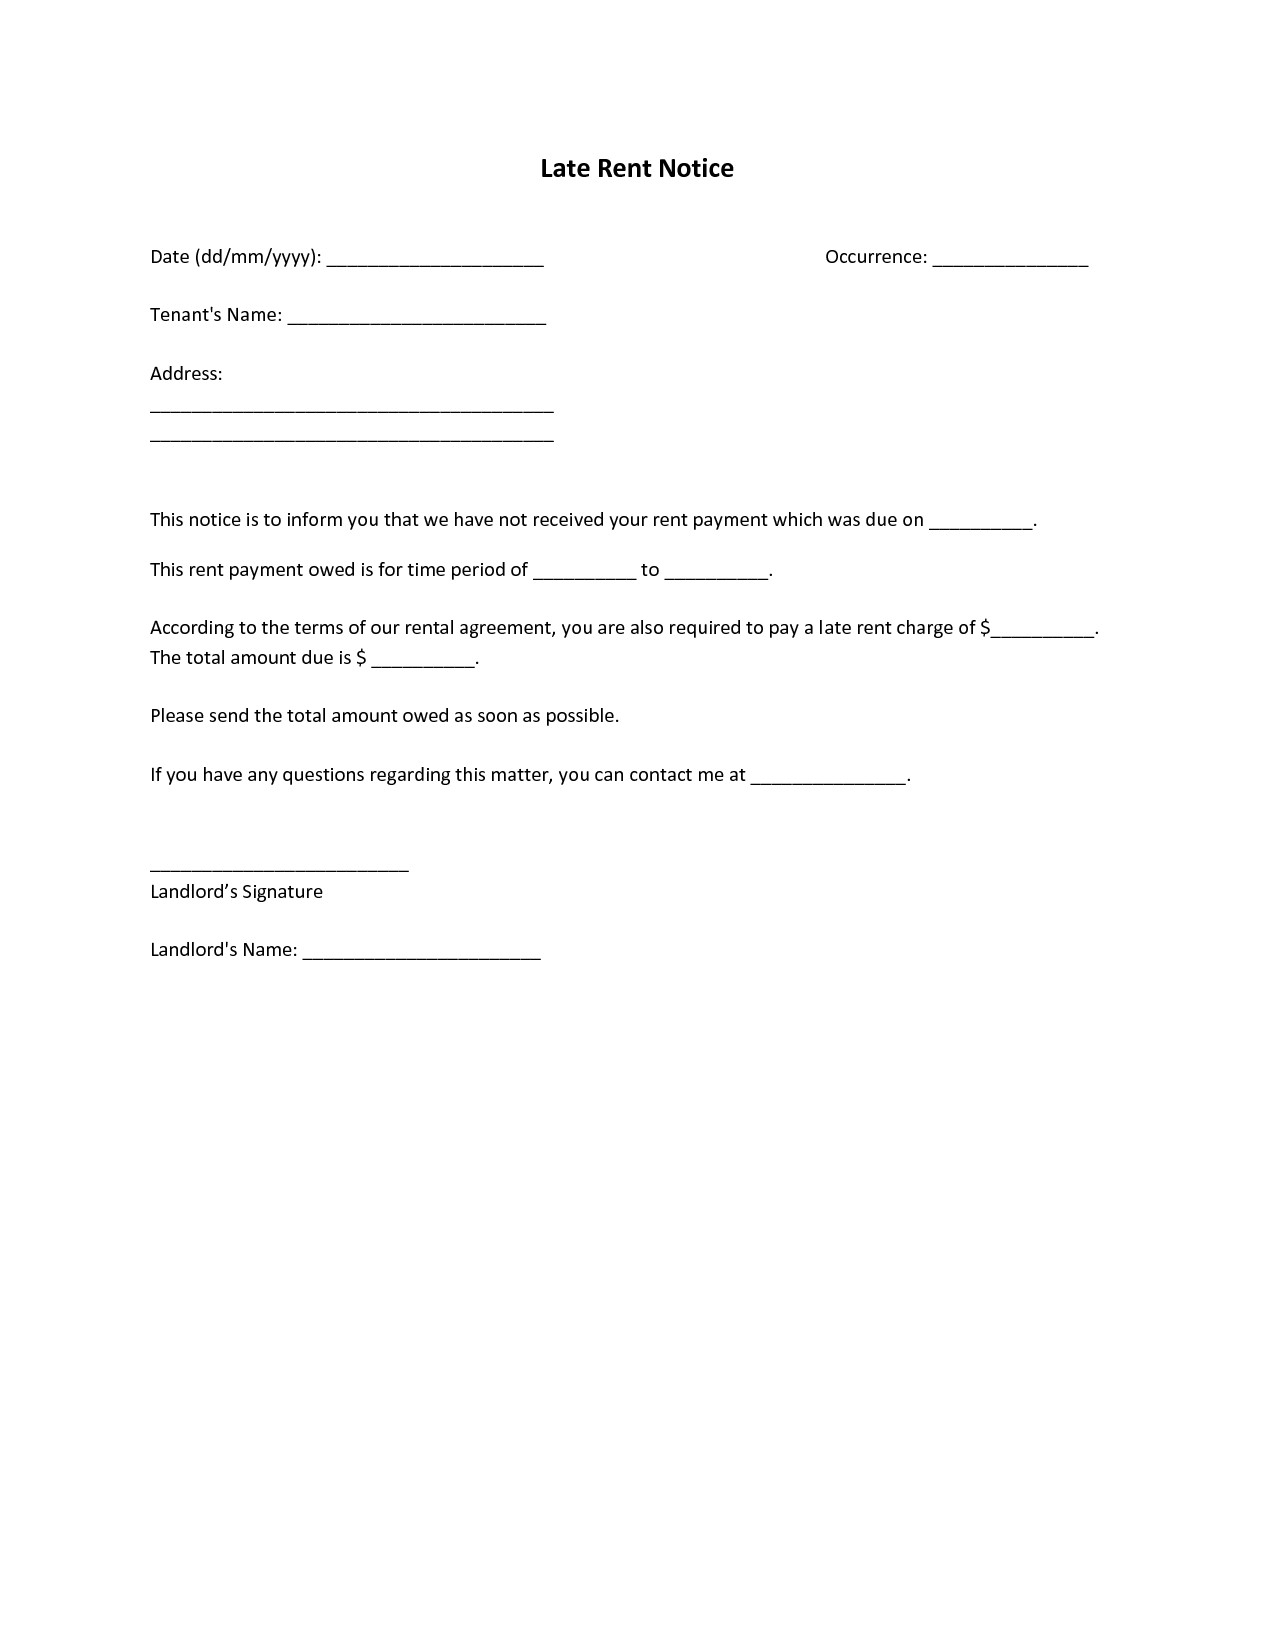 Past Due Rent Letter Template - Past Due Letter Template Beautiful Sample Interest Letter for